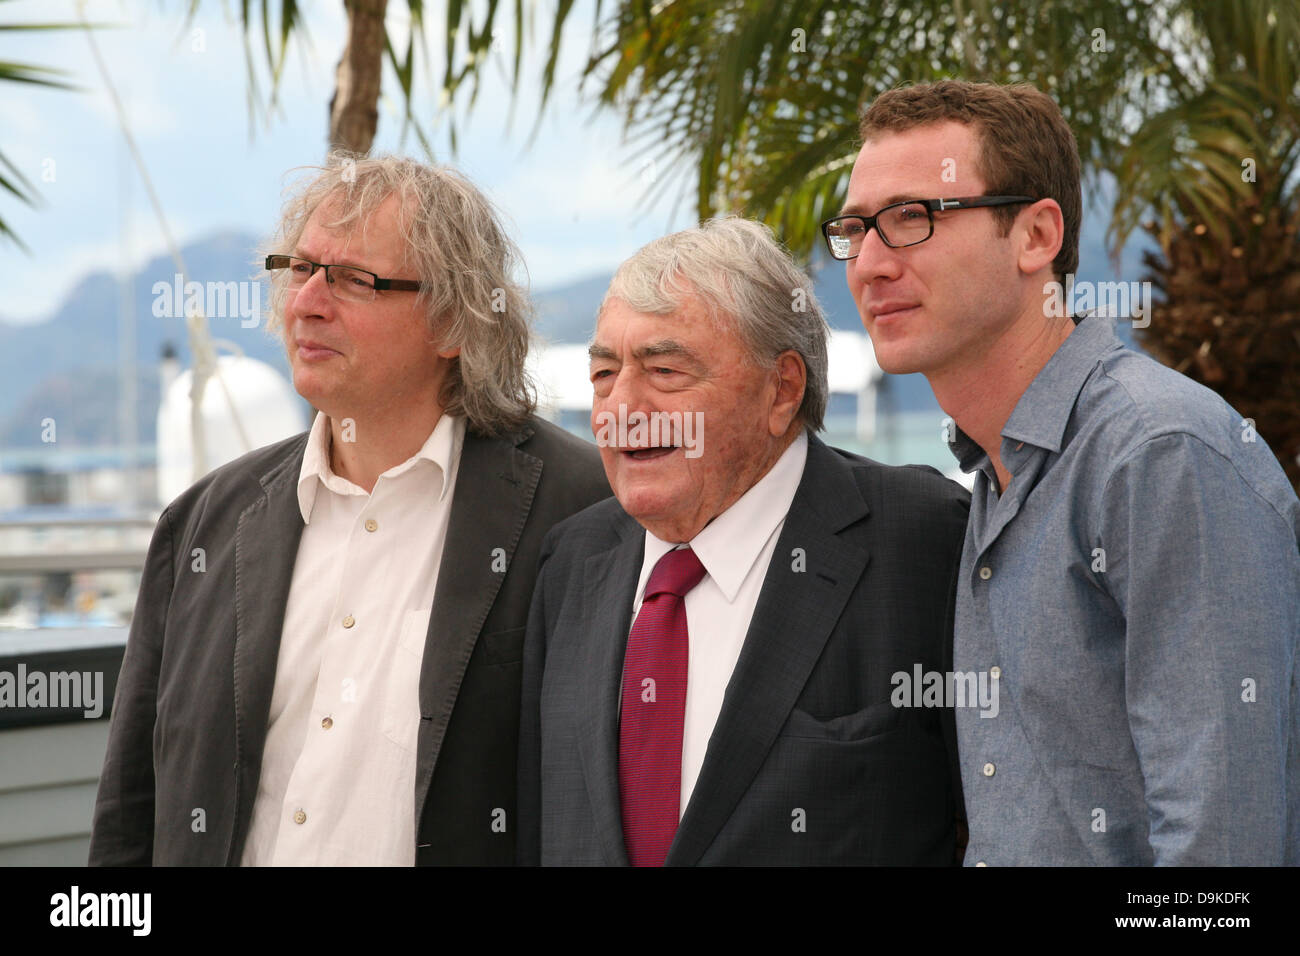 Producer Danny Krausz  Director Claude Lanzmann and producer David     Producer Danny Krausz  Director Claude Lanzmann and producer David Frenkel  at the Le Dernier Des Injustes film photocall